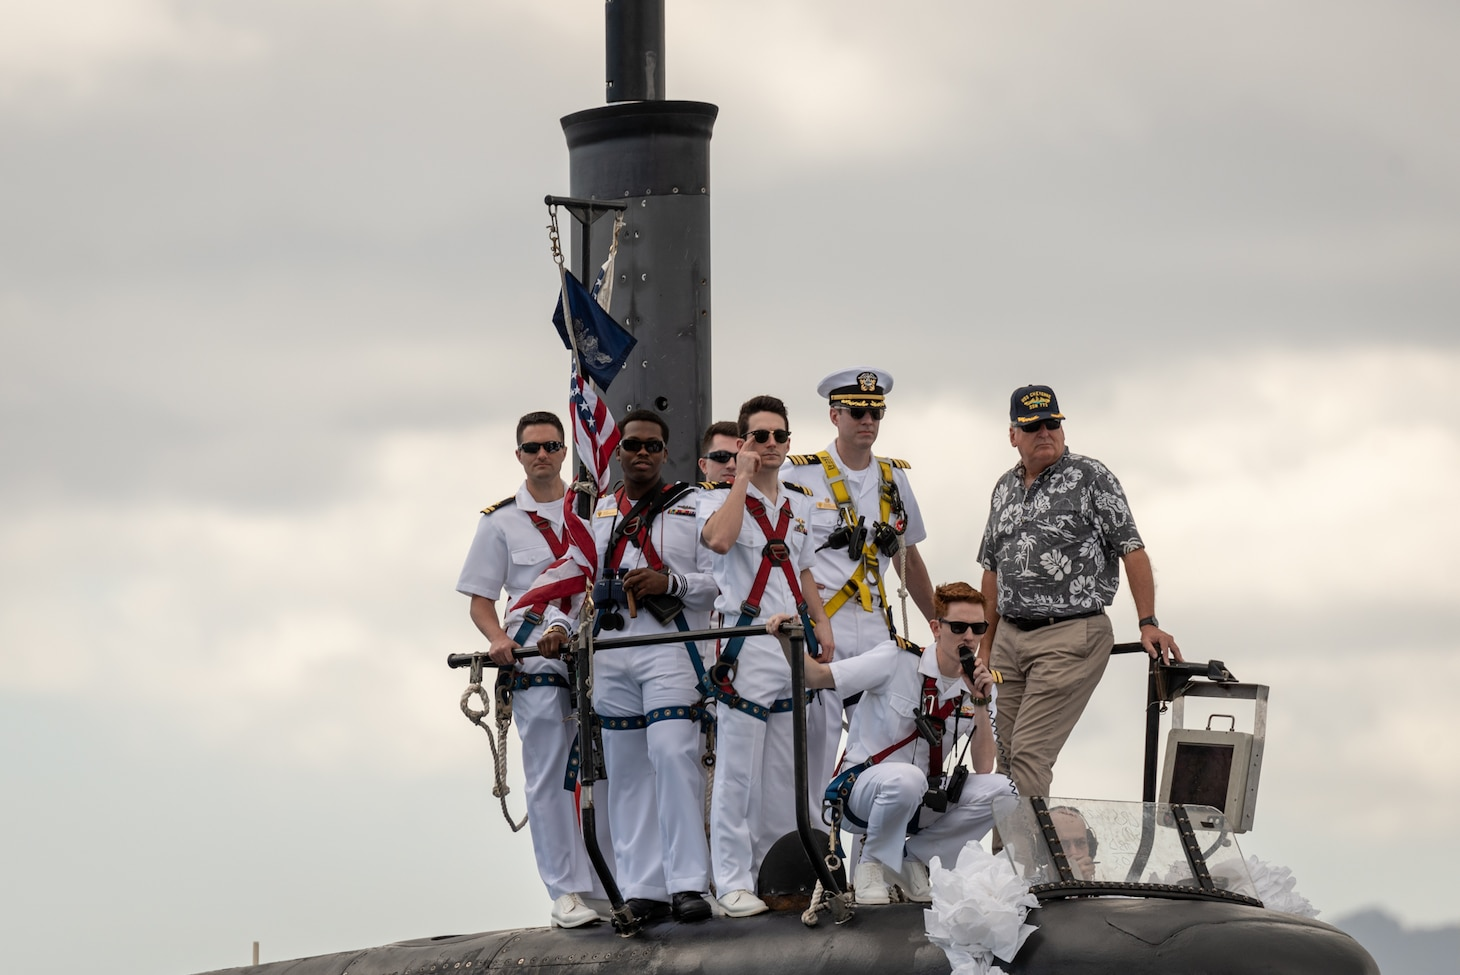 PEARL HARBOR -- Los Angeles-Class fast-attack submarine USS Cheyenne (SSN 773) and its crew arrive at Joint Base Pearl Harbor-Hickam, after completing their latest deployment, April 26. (U.S. Navy Photo by Mass Communication Specialist 1st Class Daniel Hinton)